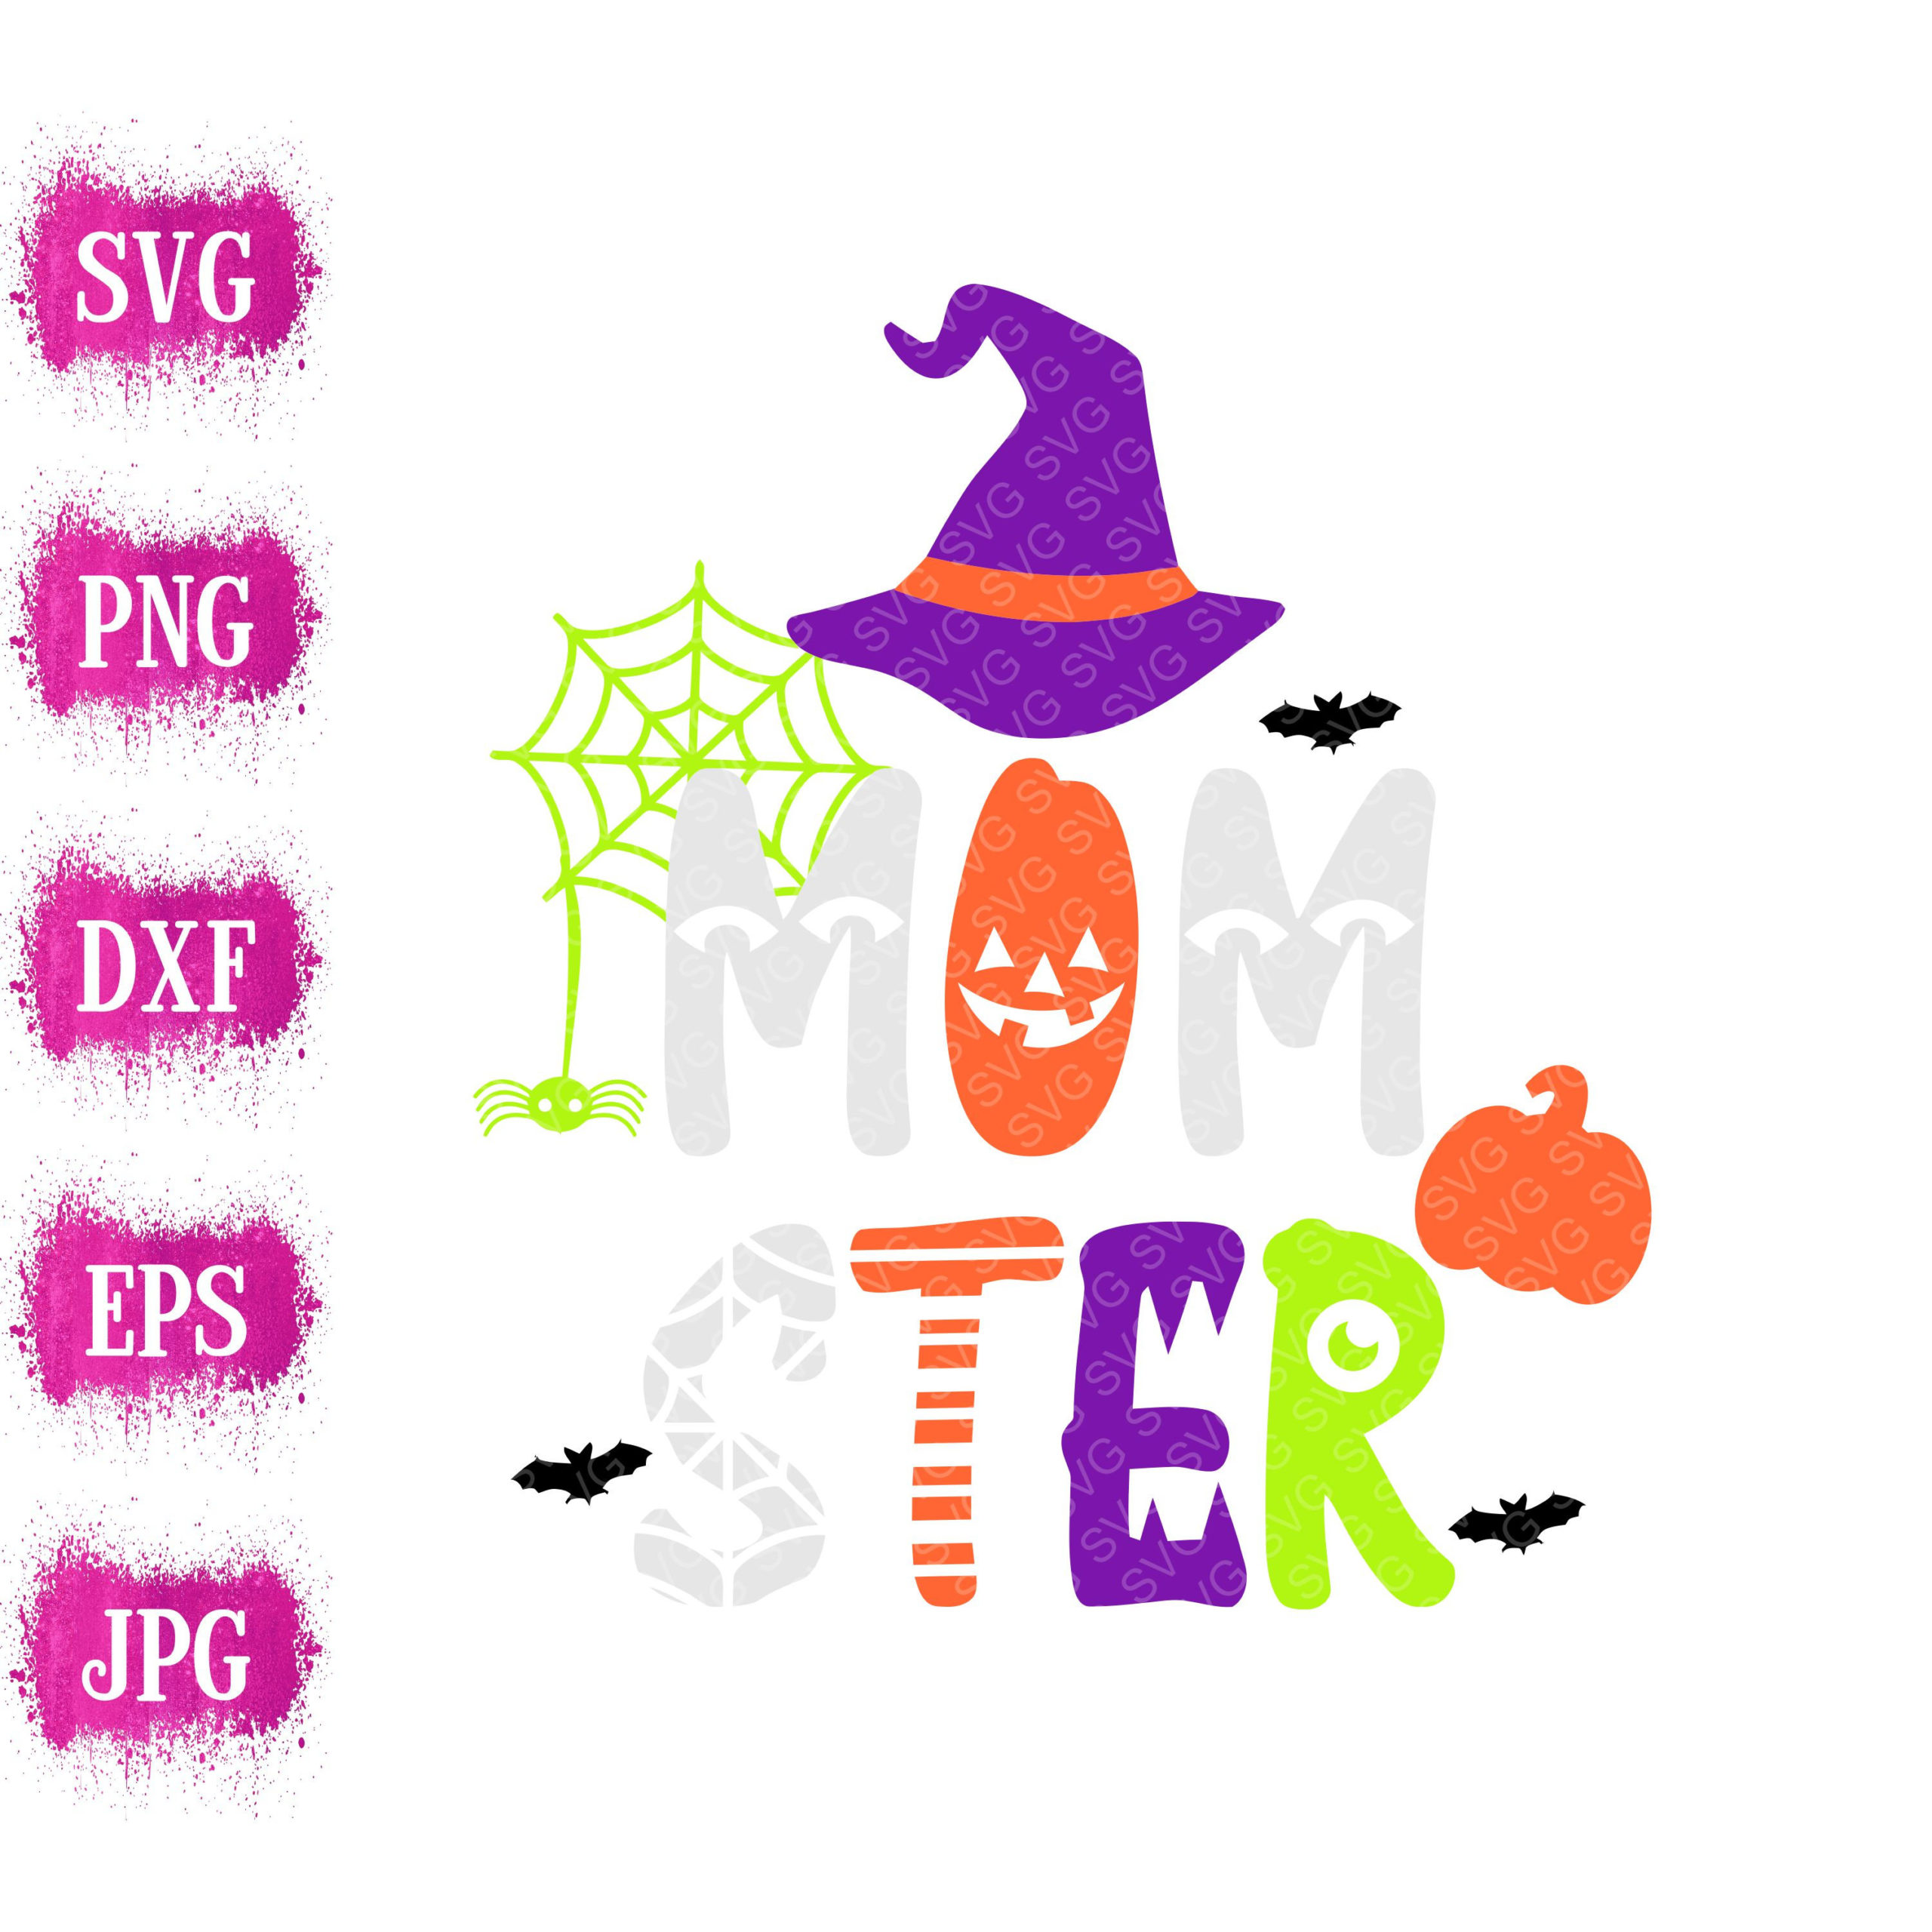 Momster-svg-halloween-svg-bone-svg-pumpkin-svg-autumn-svg-monster-svg-digital-download-commercial-use-svgs-dxf-epsadore-svg-5f6f8be8